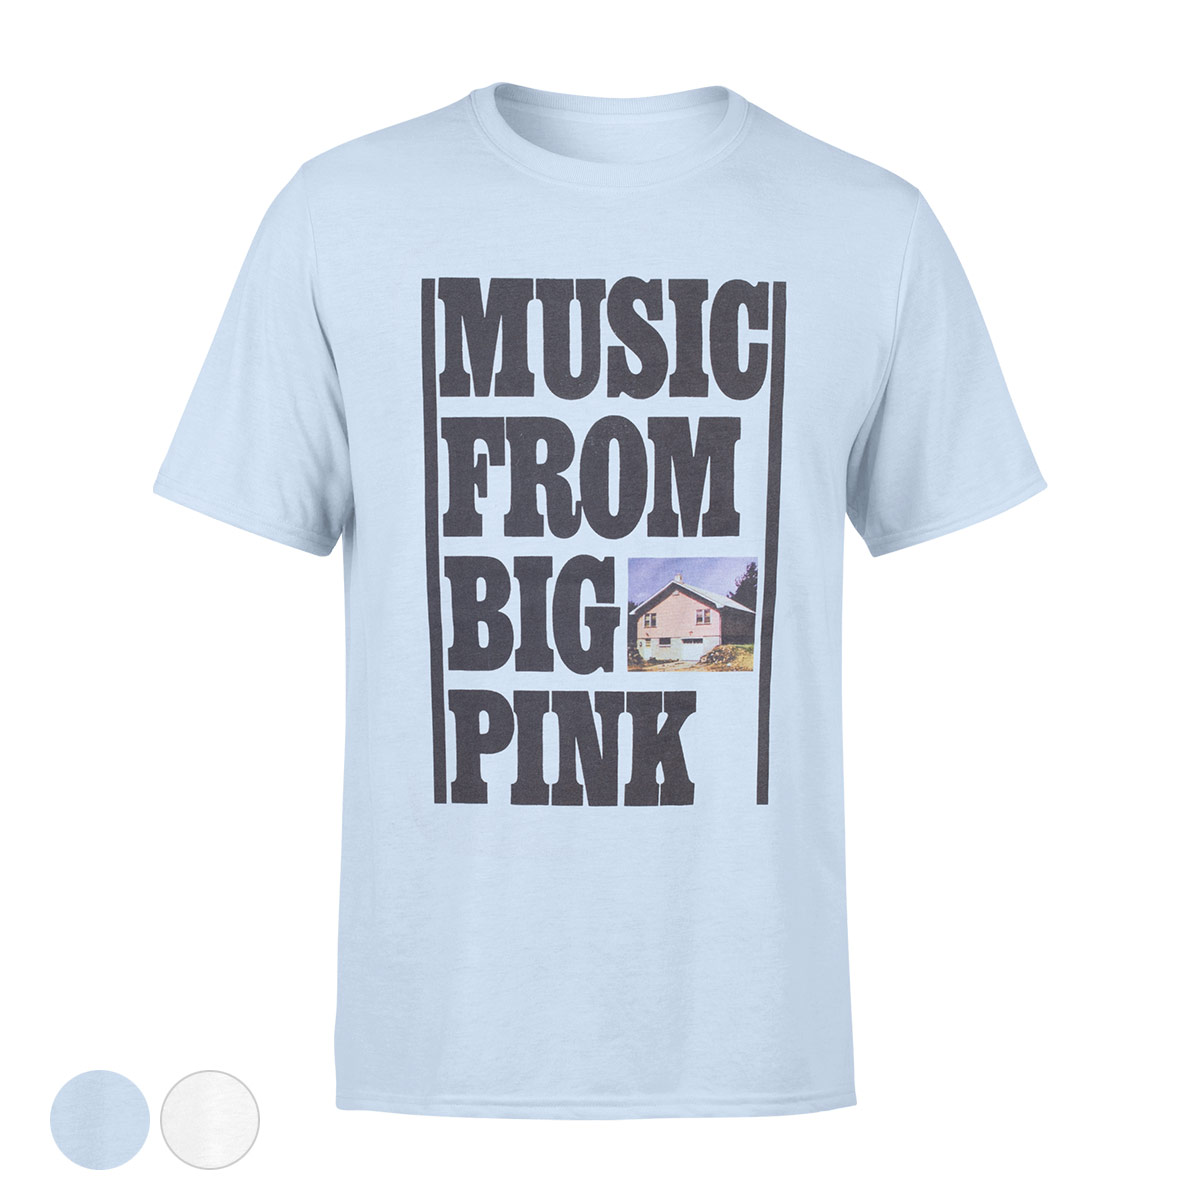 The Band Music From the Big Pink T-Shirt